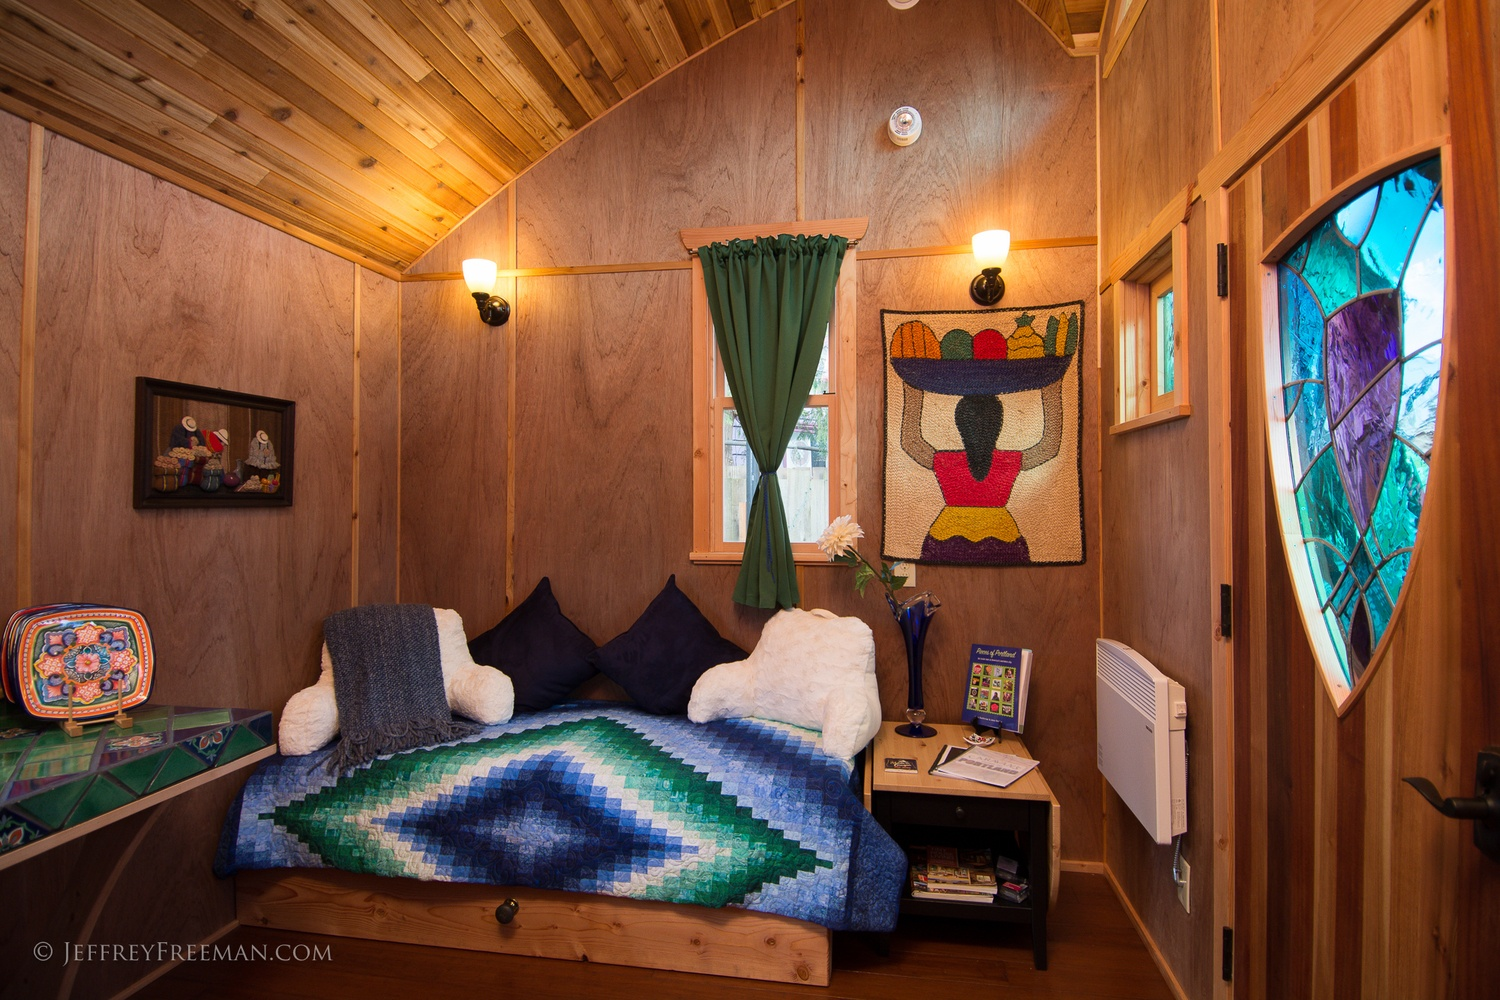 Cozy Interior - Pacifica by Zyl Vardos at the Tiny House Hotel